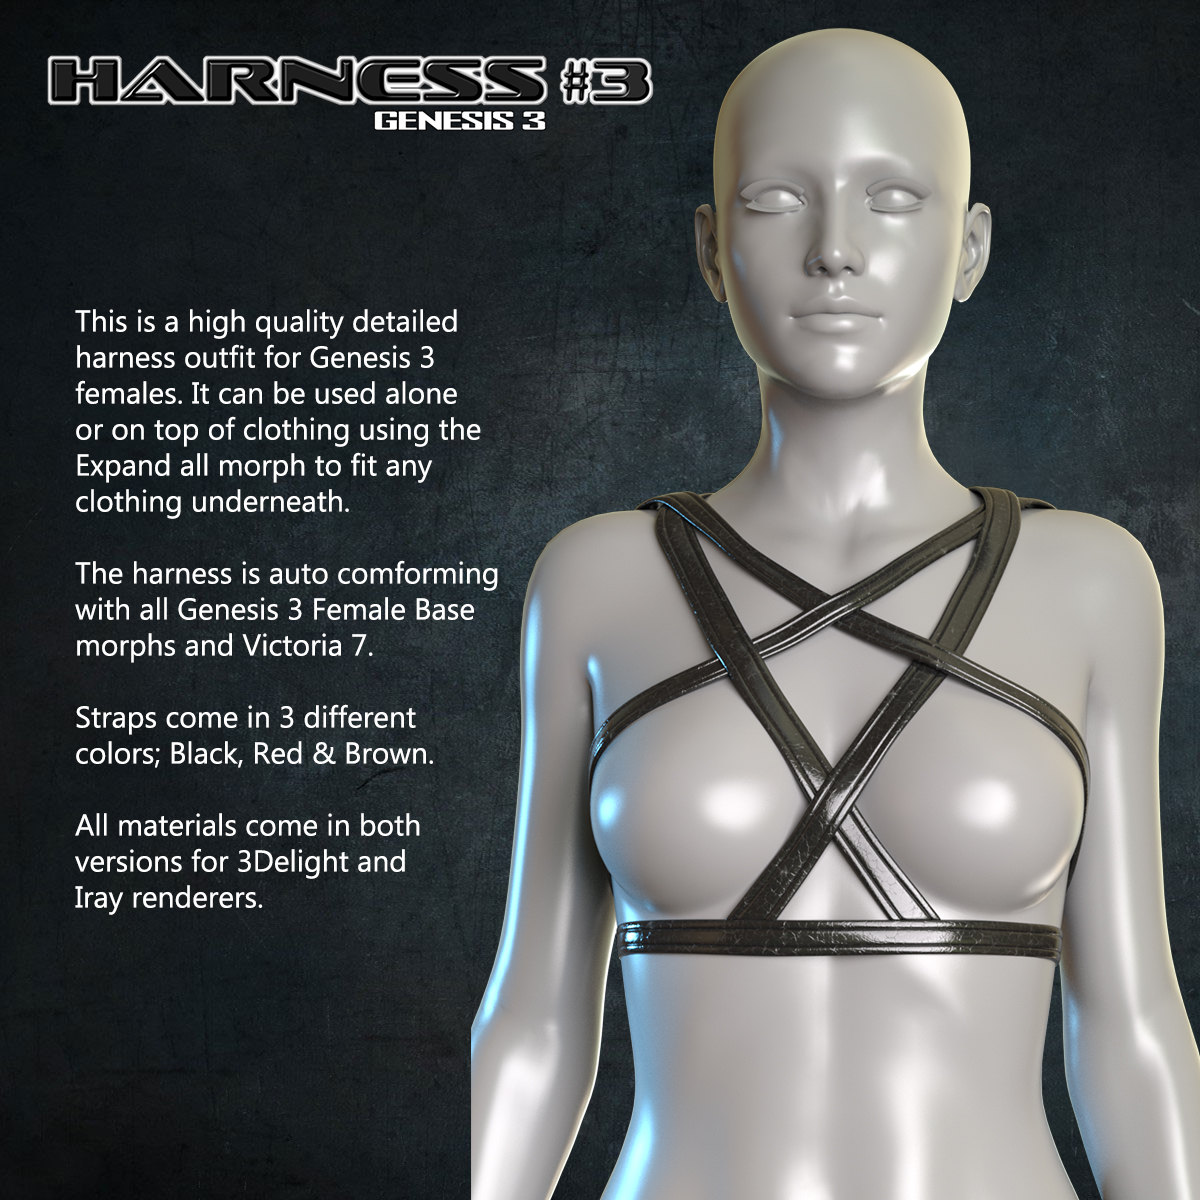 Exnem Harness 3 for Genesis 3 Female